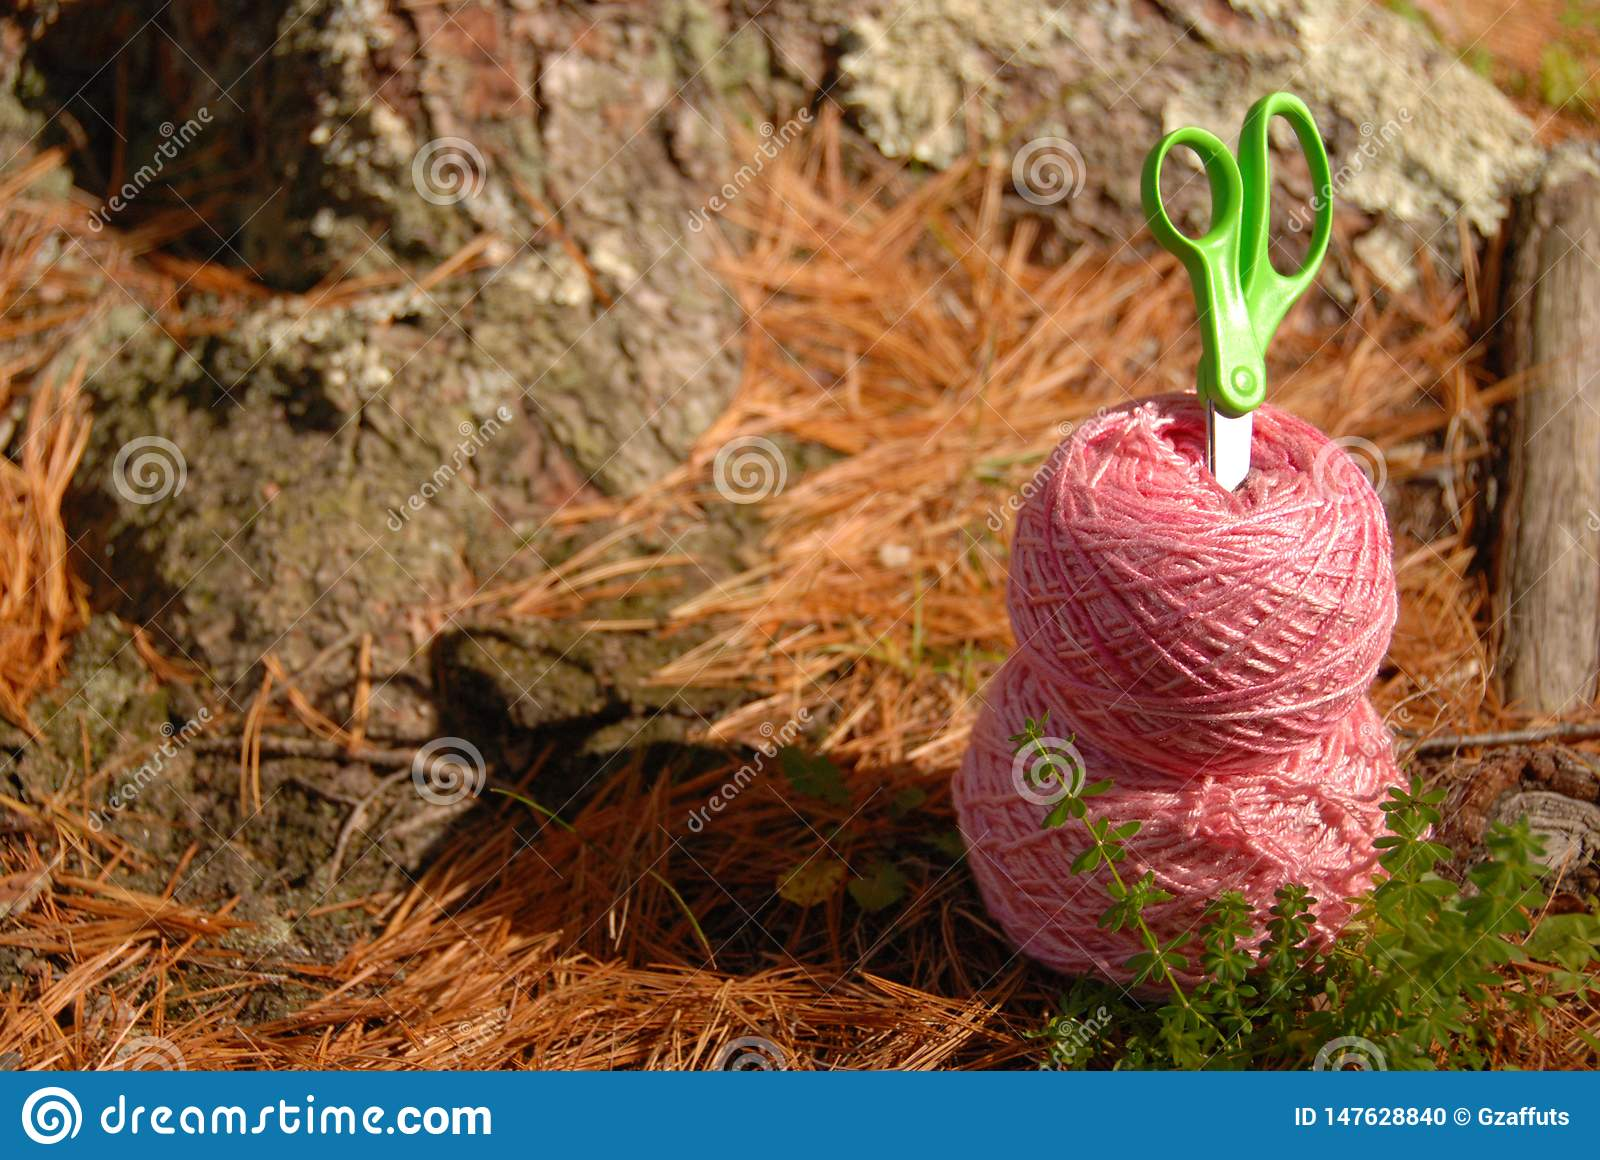 Pink yarn and green scissors on forest floor